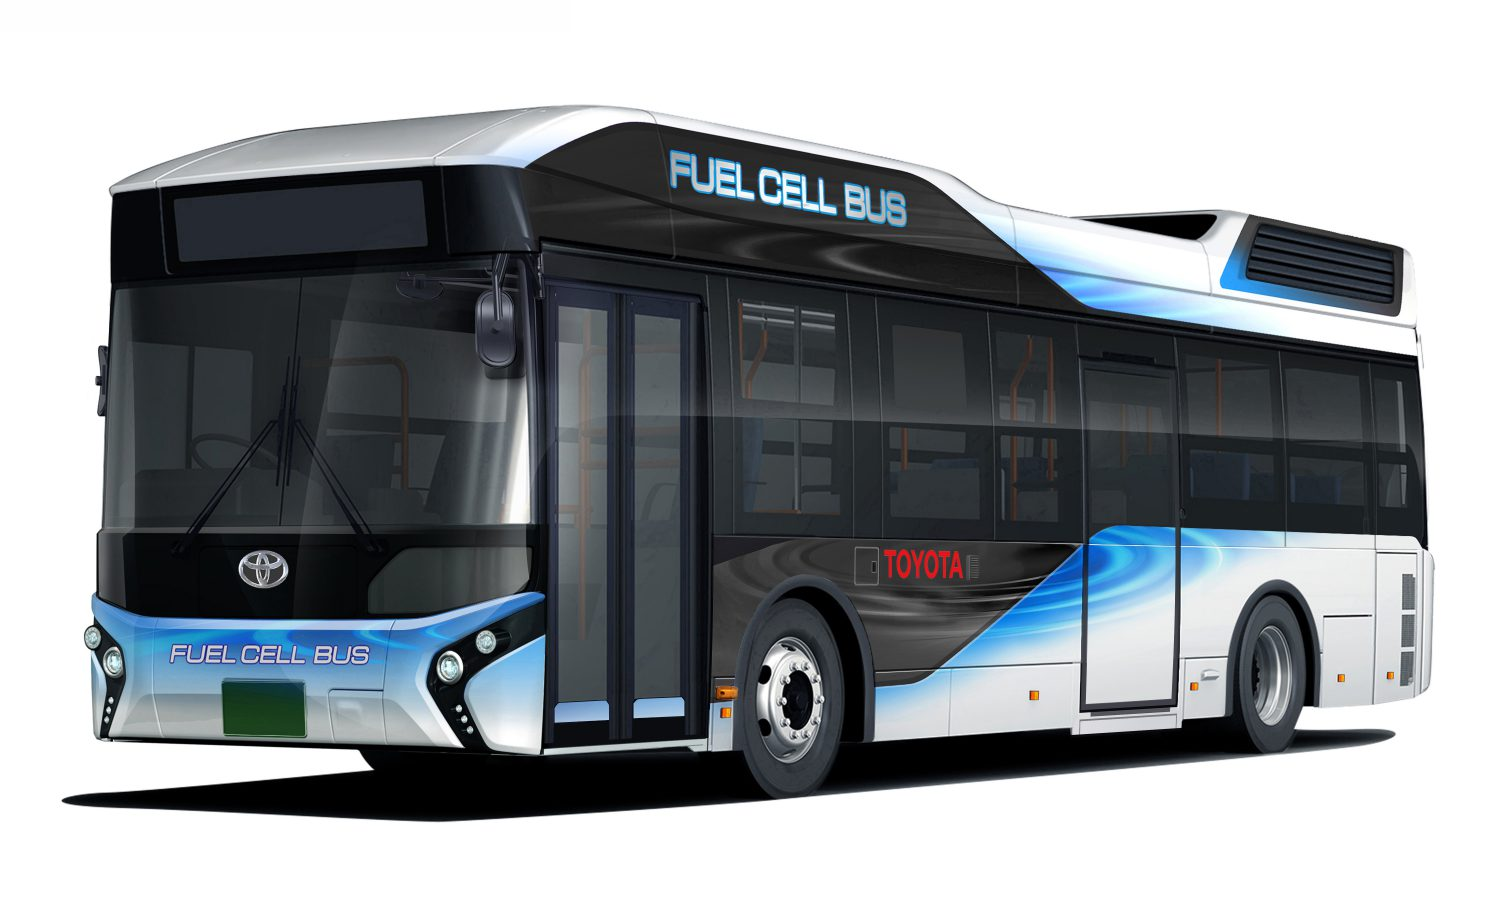 Toyota to Start Sales of Fuel Cell Buses under the Toyota Brand from Early 2017 (in Japan)